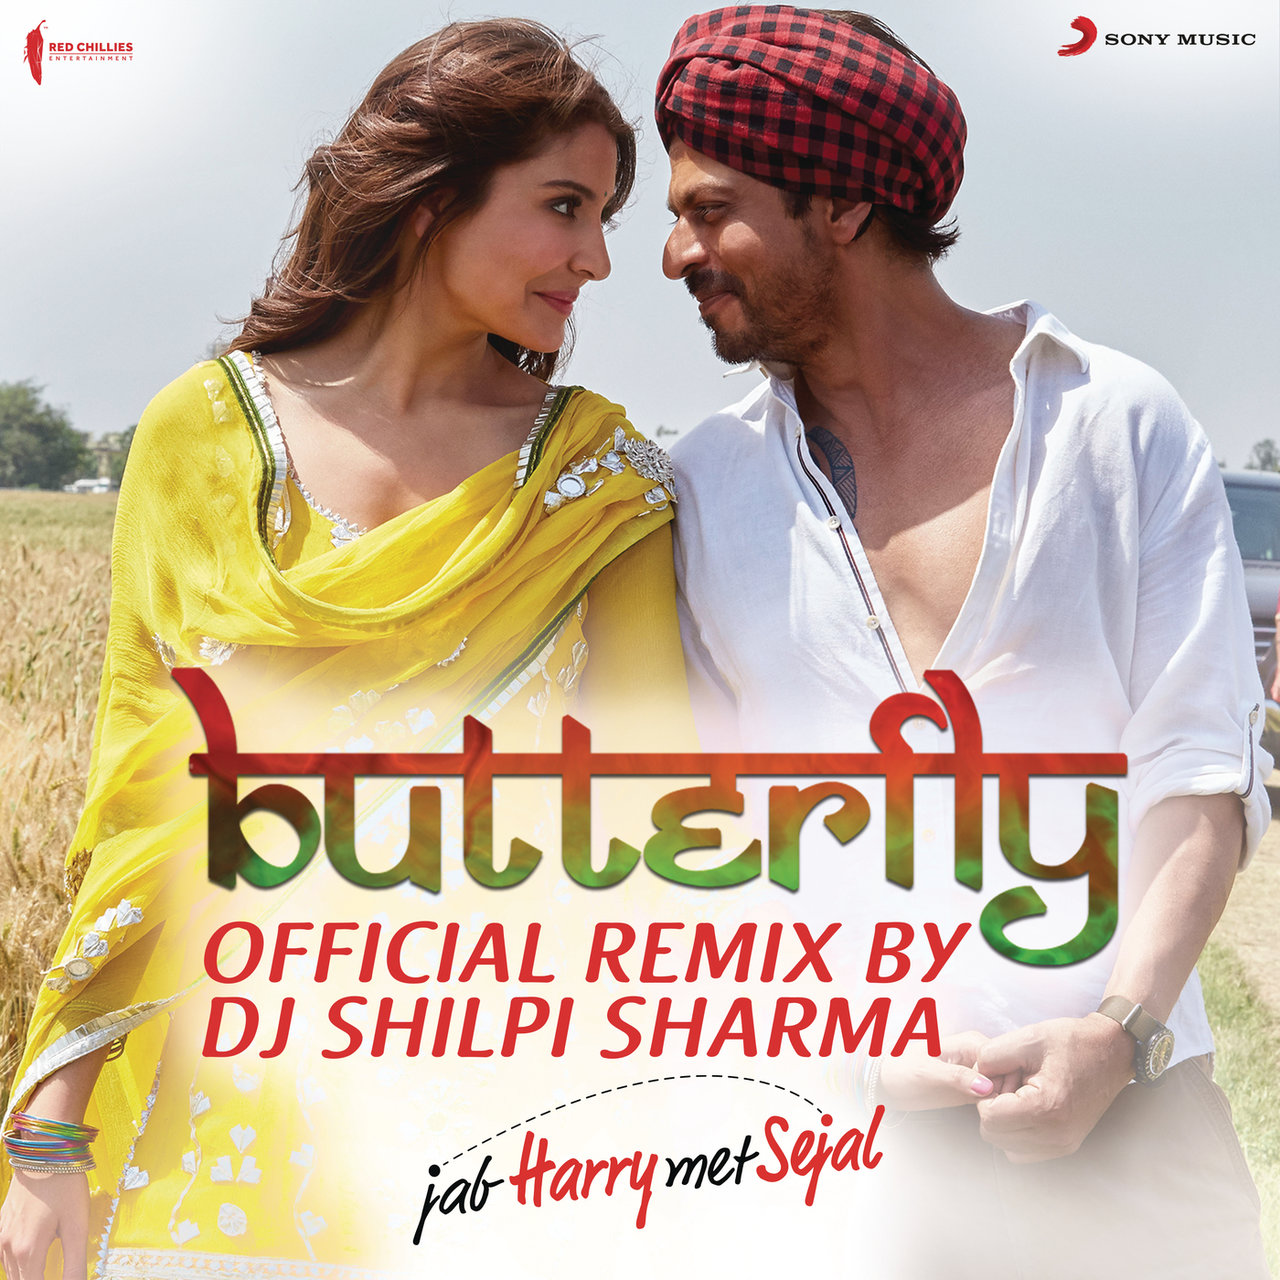 Butterfly (Official Remix by DJ Shilpi Sharma) [From